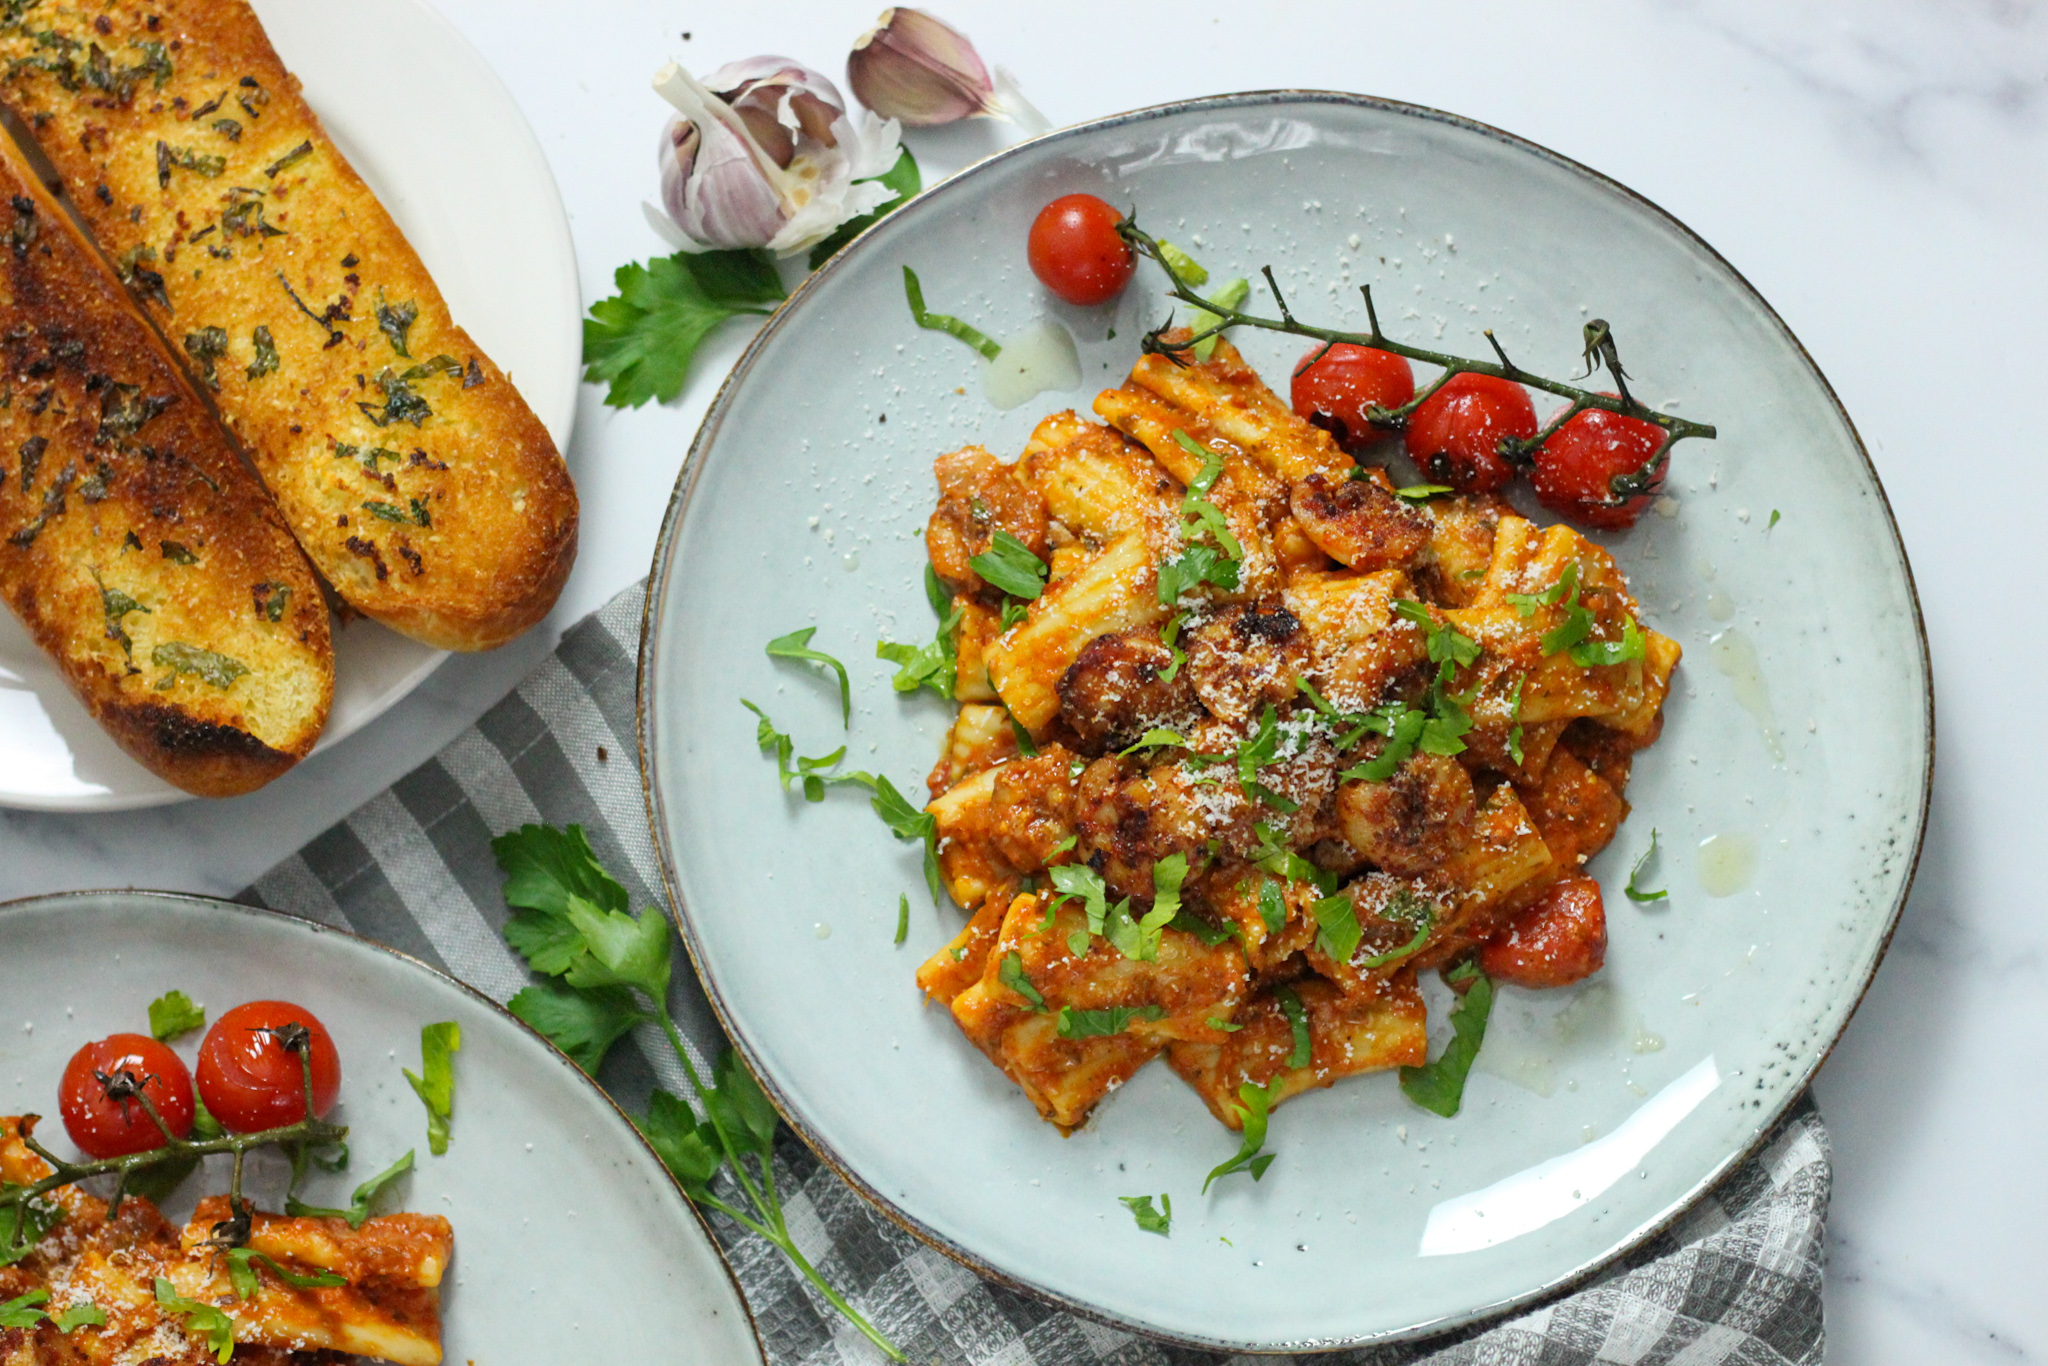 Warm up to this Awesome Spicy Shrimp Pasta